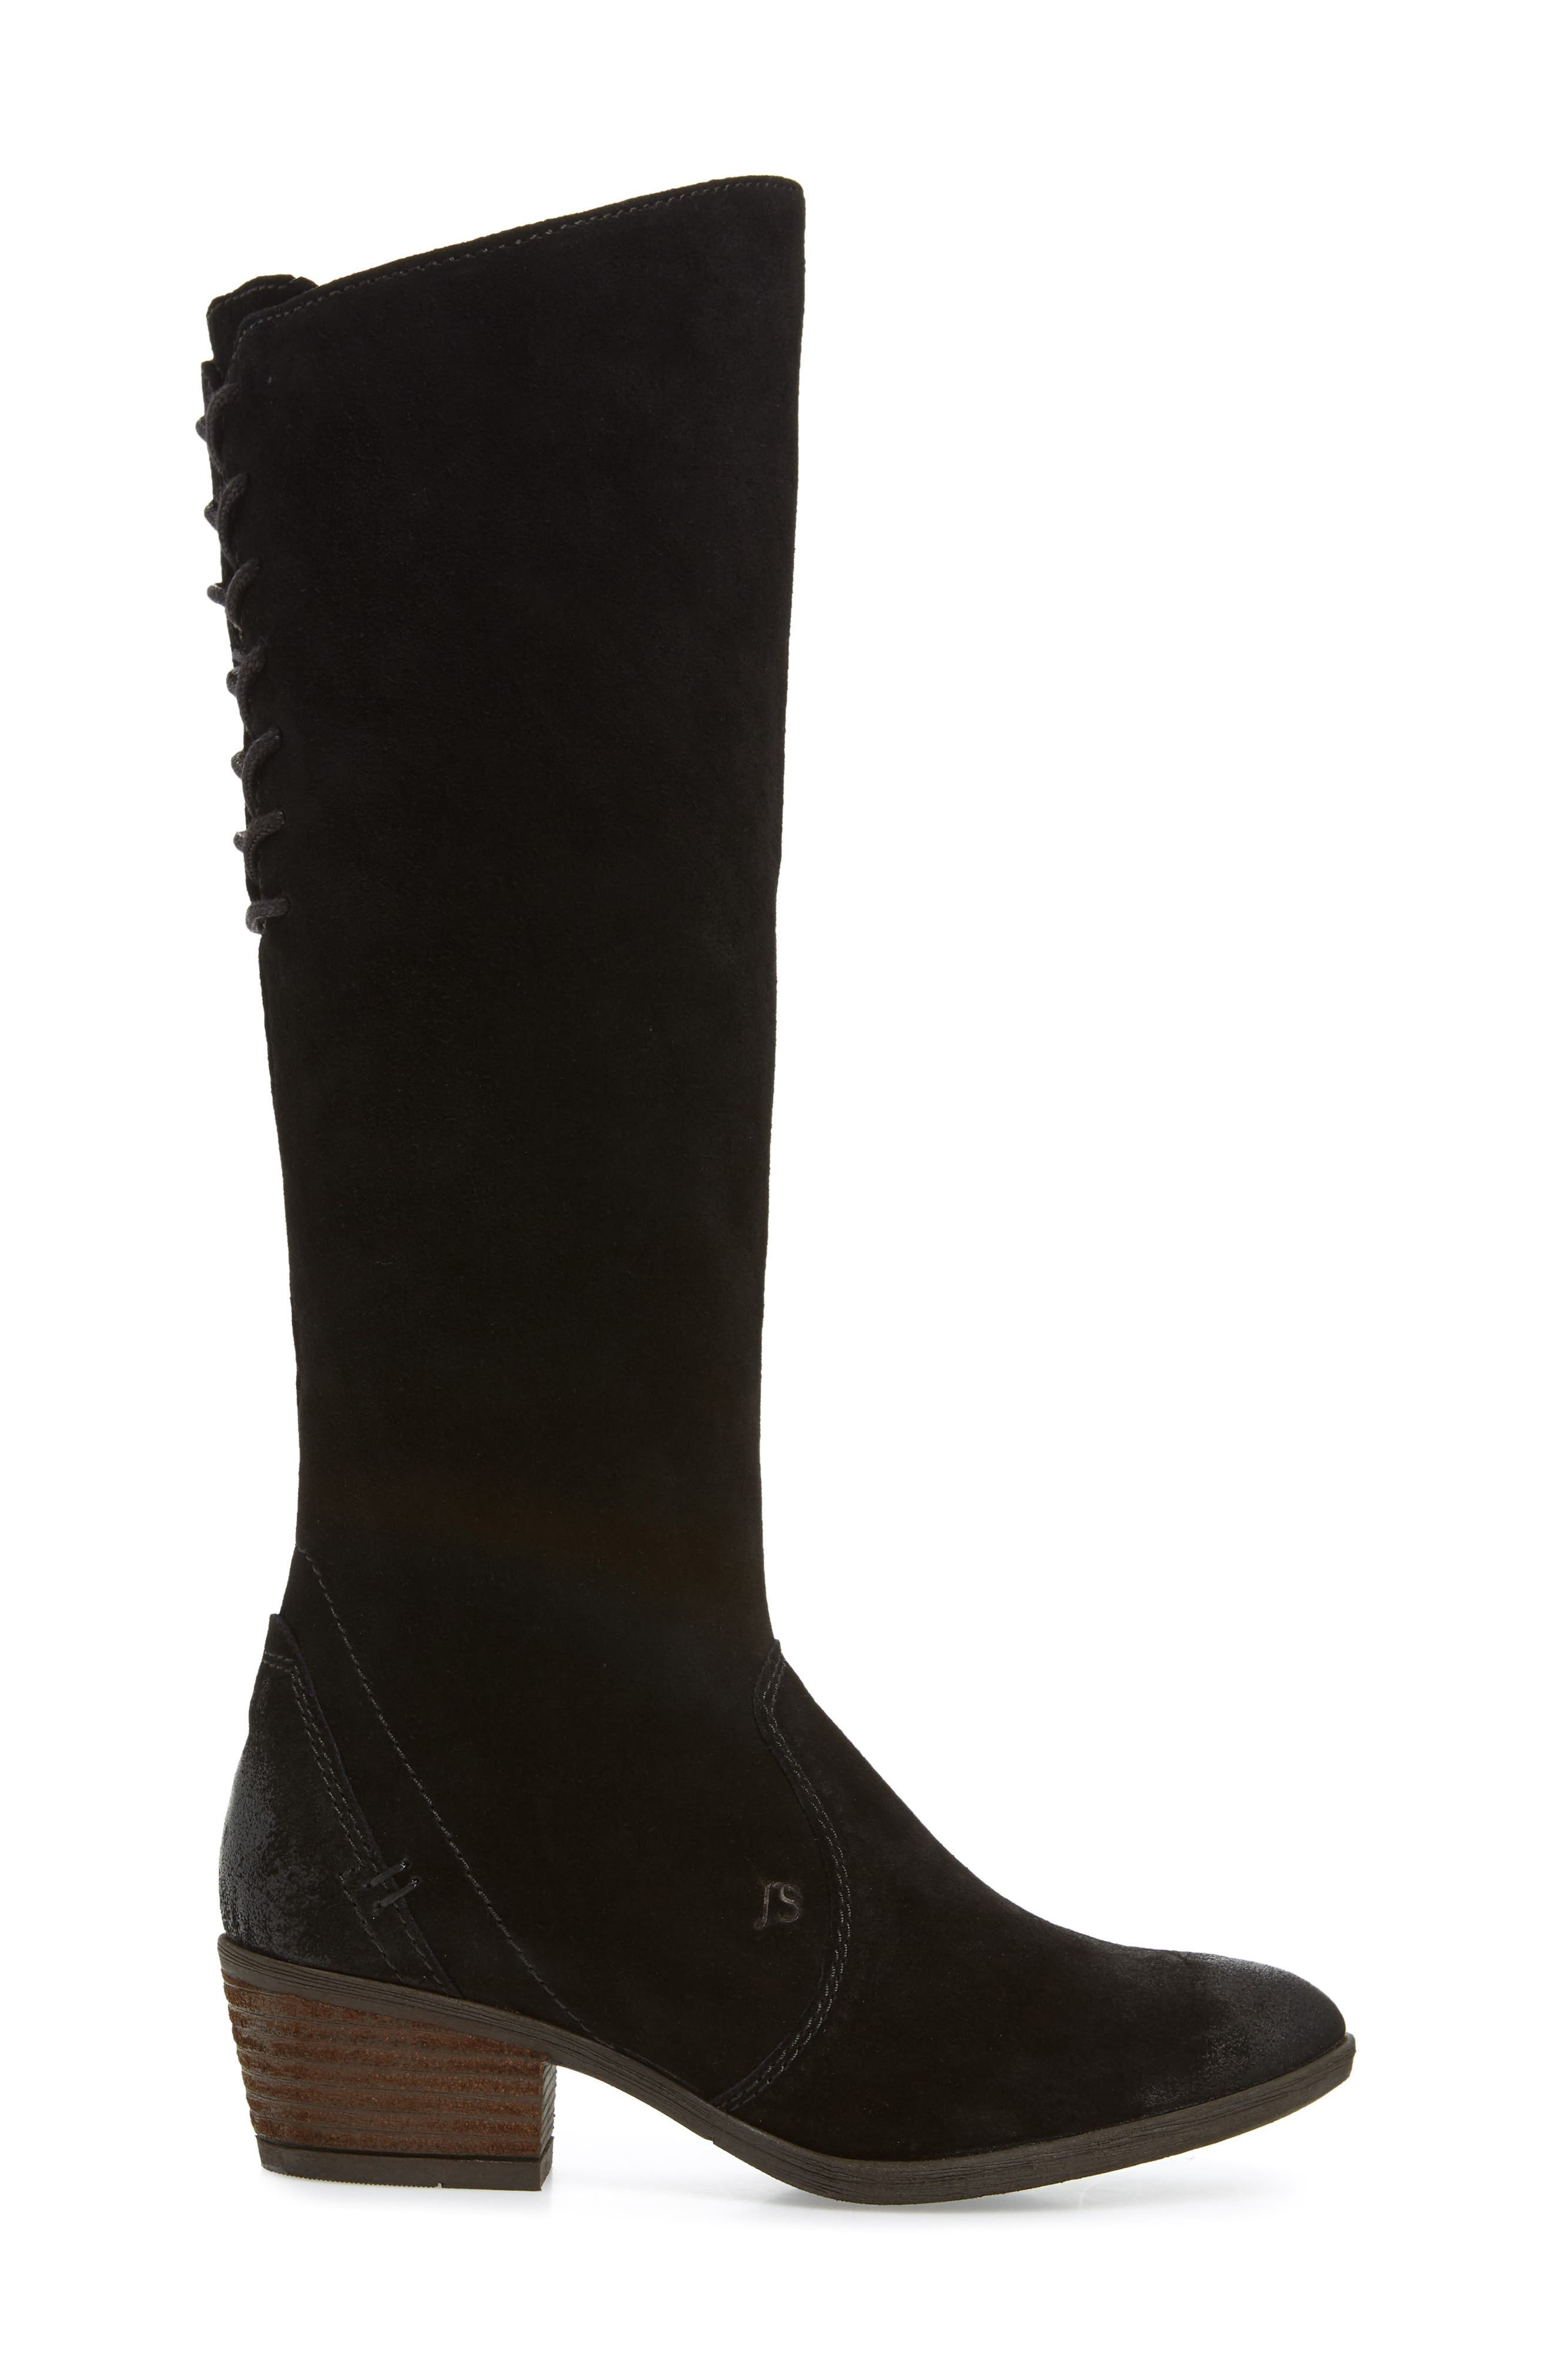 Daphne 33 Knee High Boot,                             Alternate thumbnail 3, color,                             005